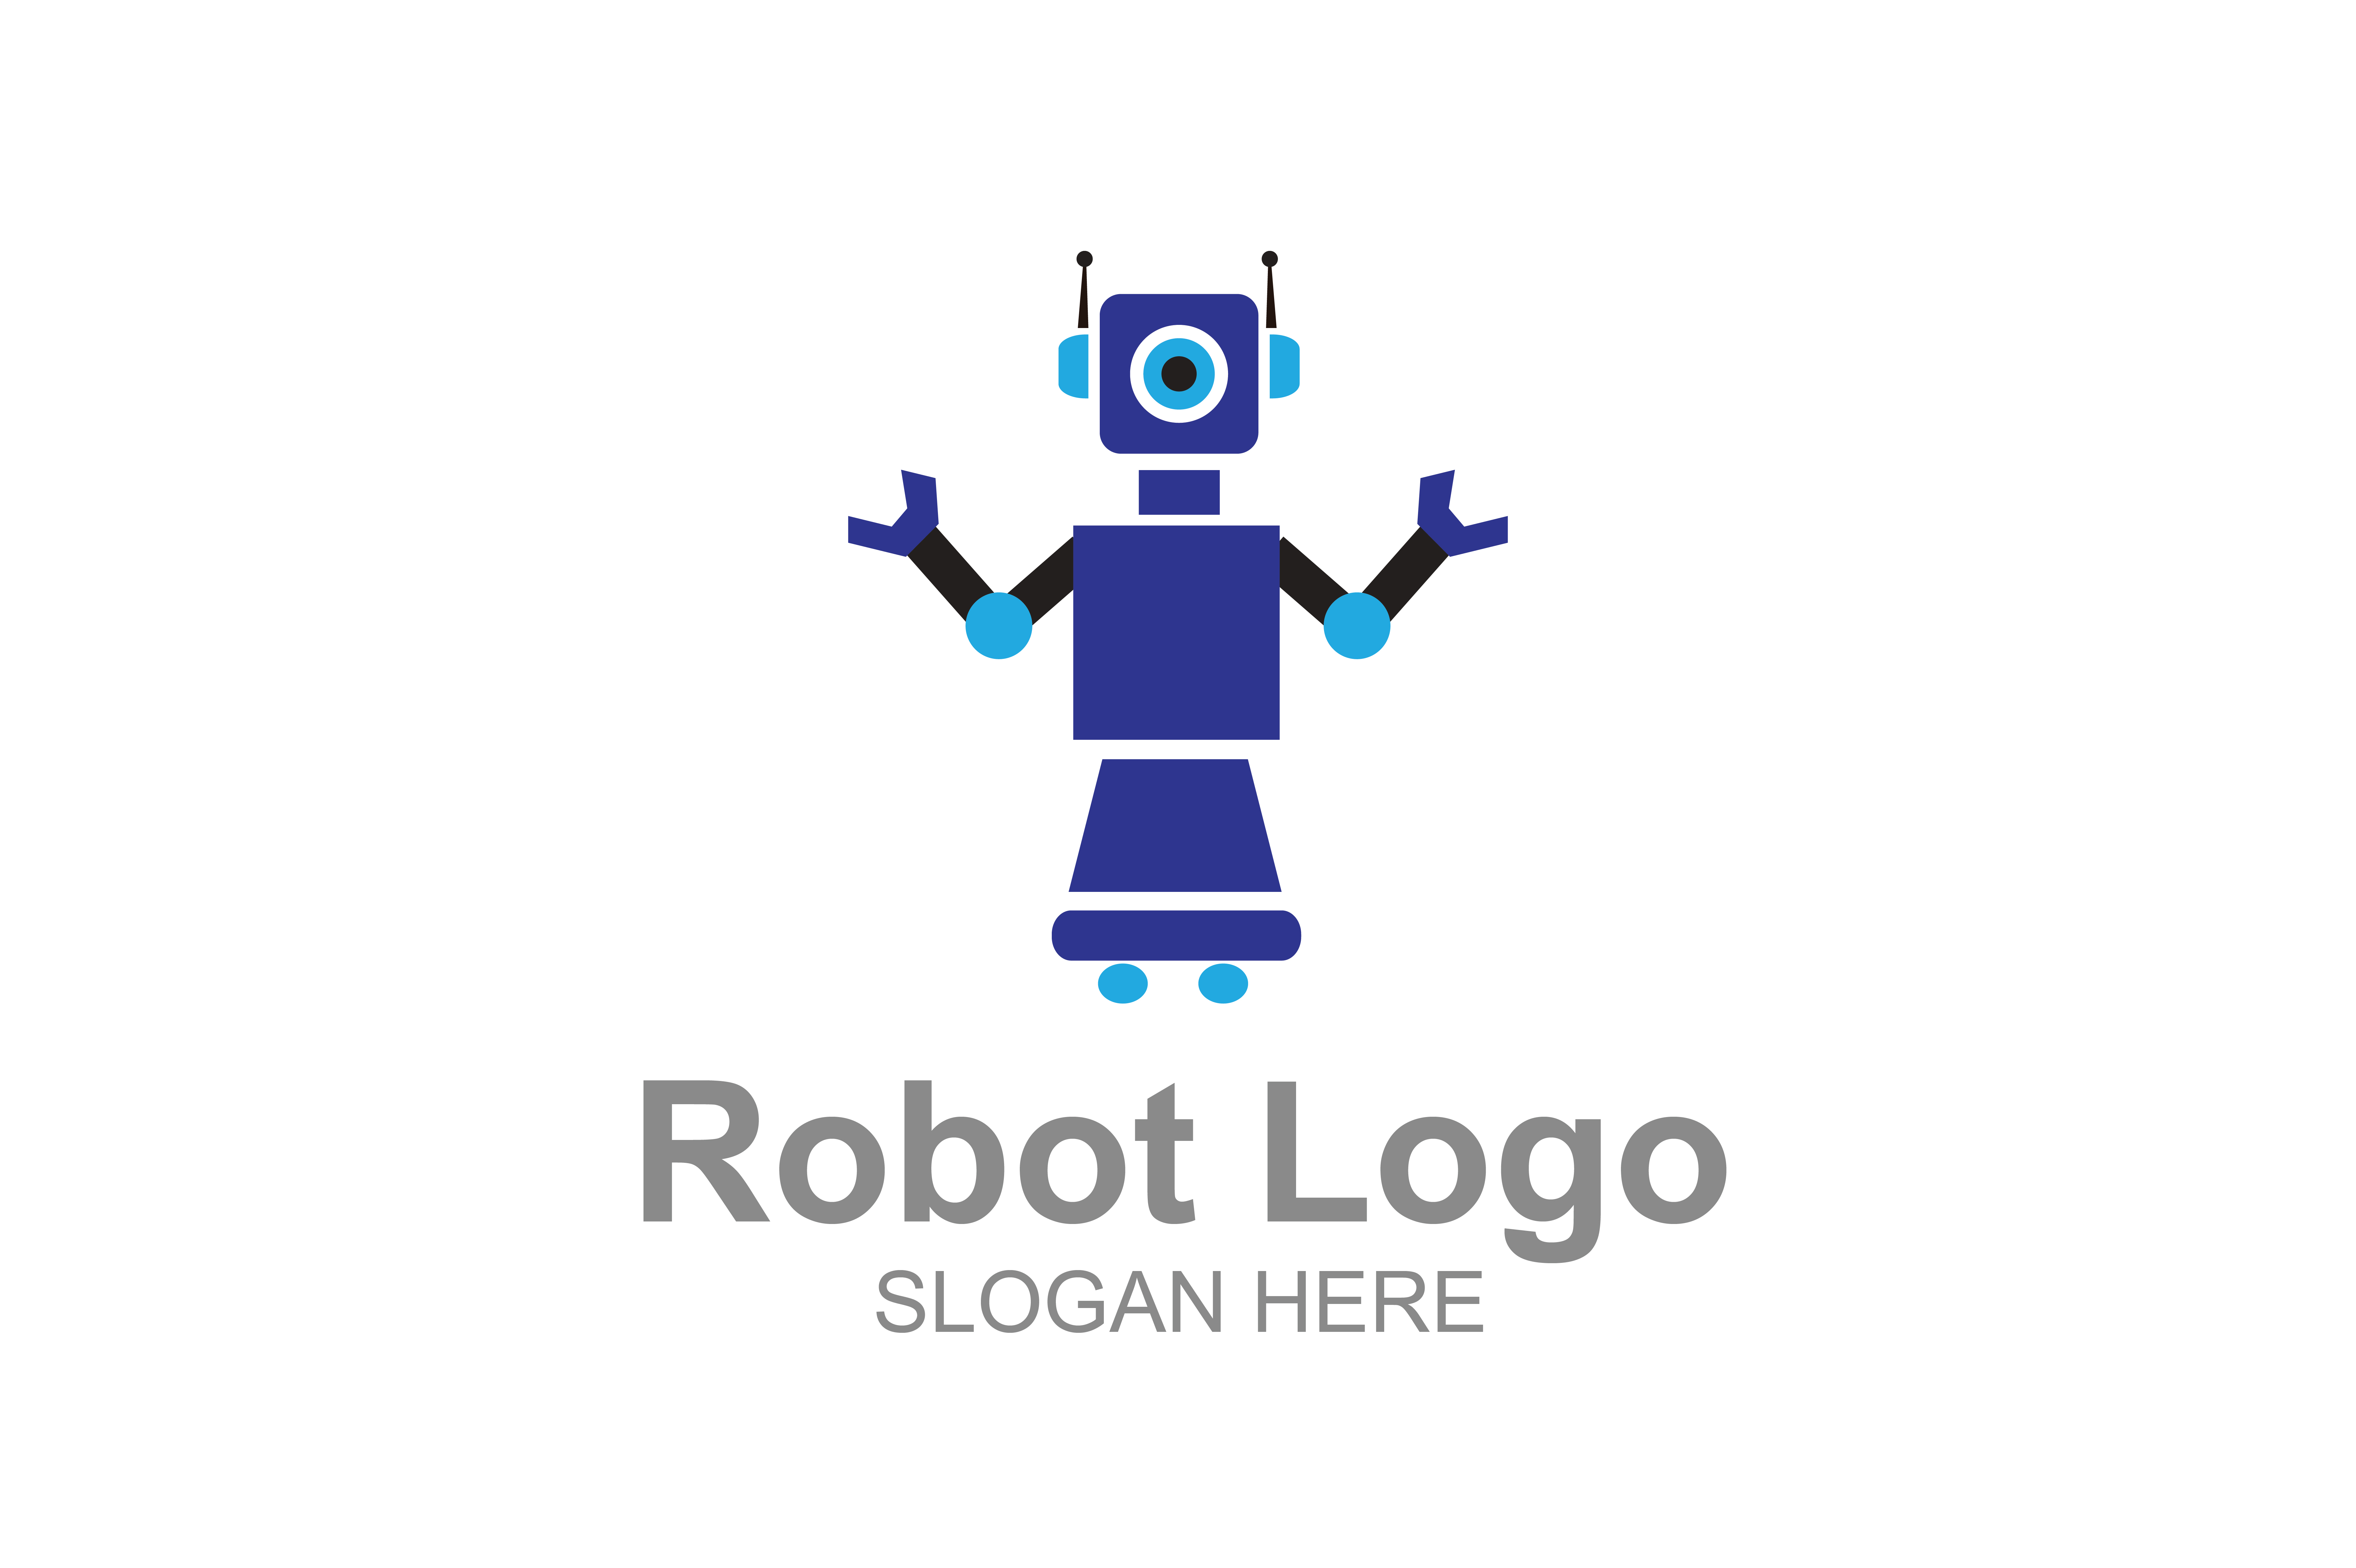 Download Free Robots Logo Graphic By Guardesign Creative Fabrica for Cricut Explore, Silhouette and other cutting machines.